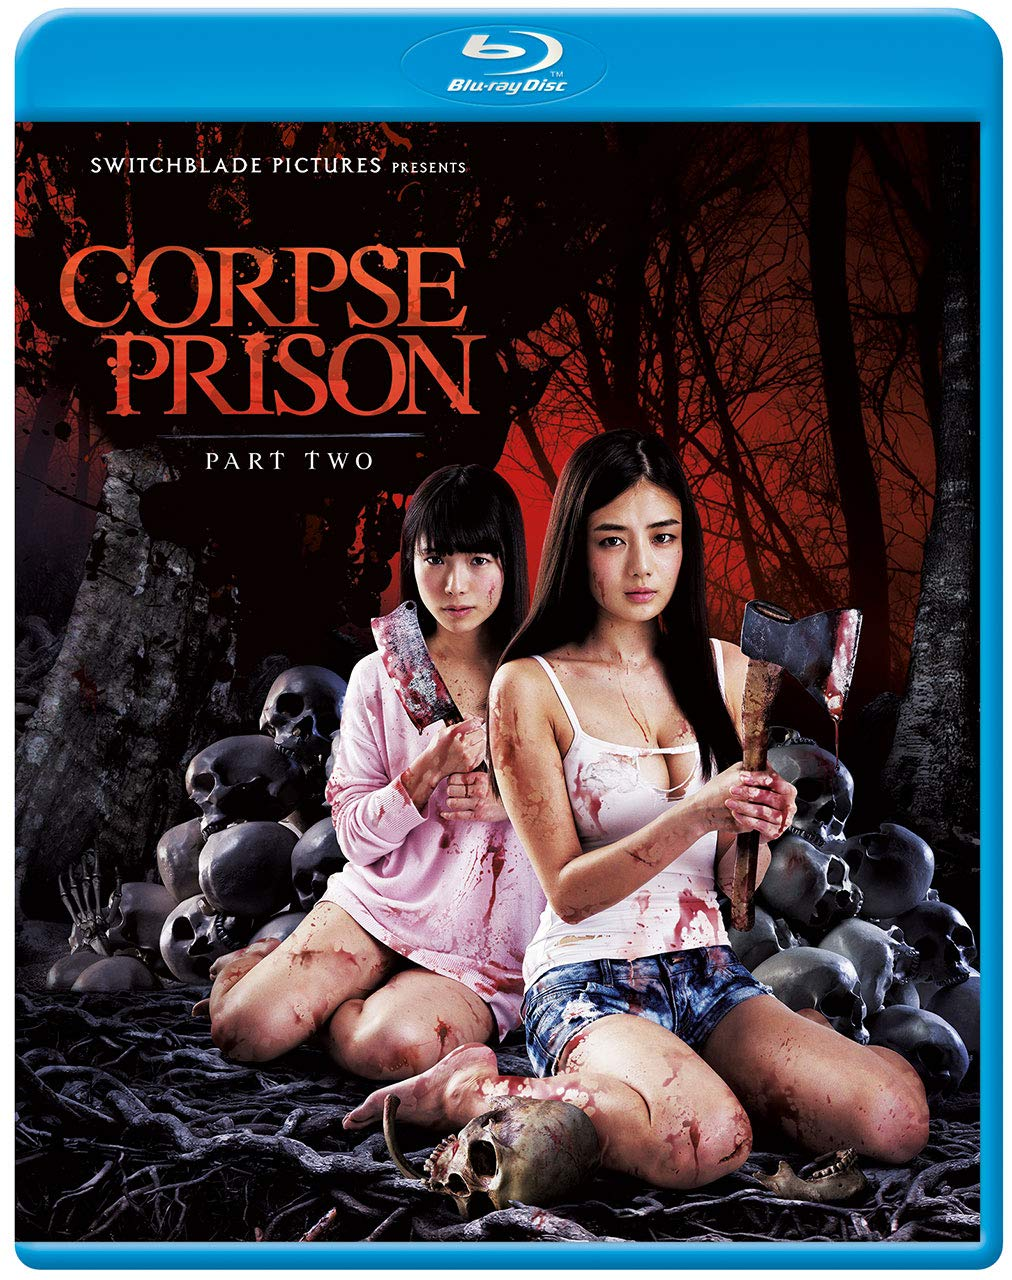 Blu-ray : Corpse Prison Part 2 (Subtitled, Anamorphic)